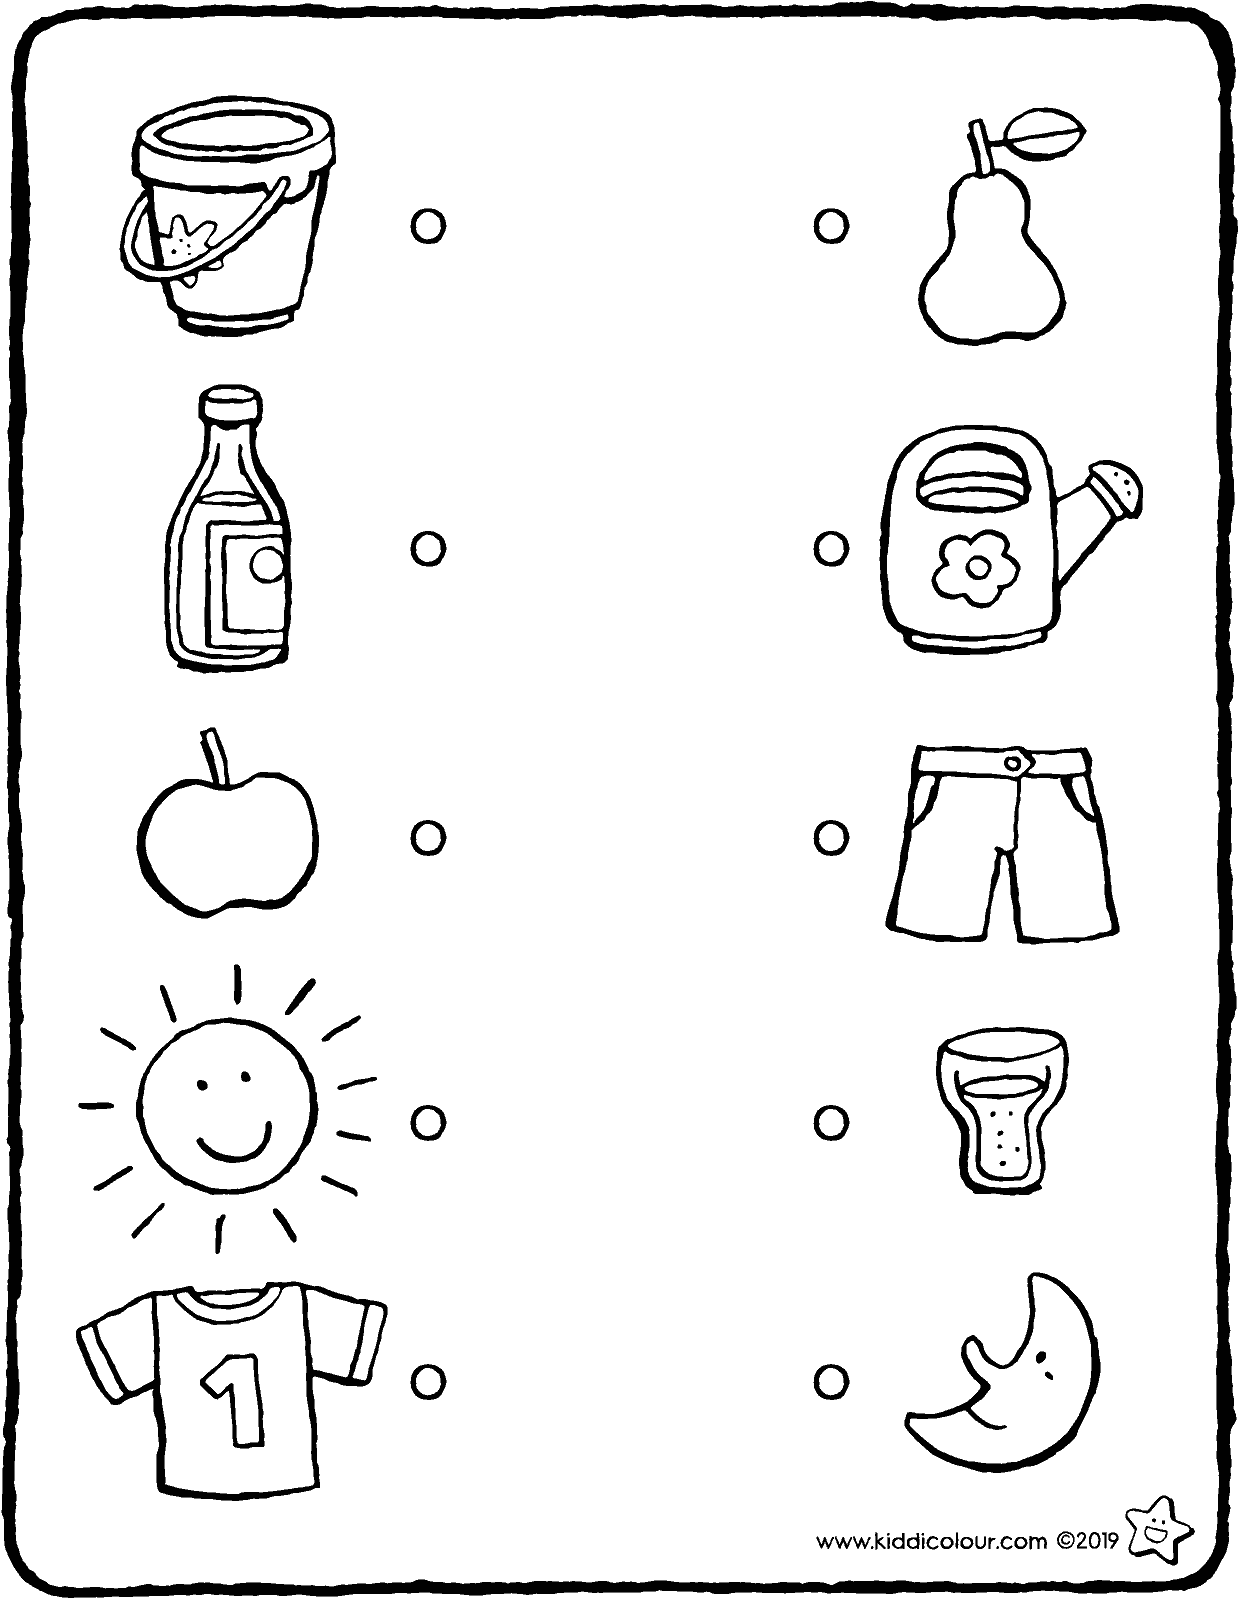 join the objects that fit together (observation exercise) colouring page drawing picture 01V